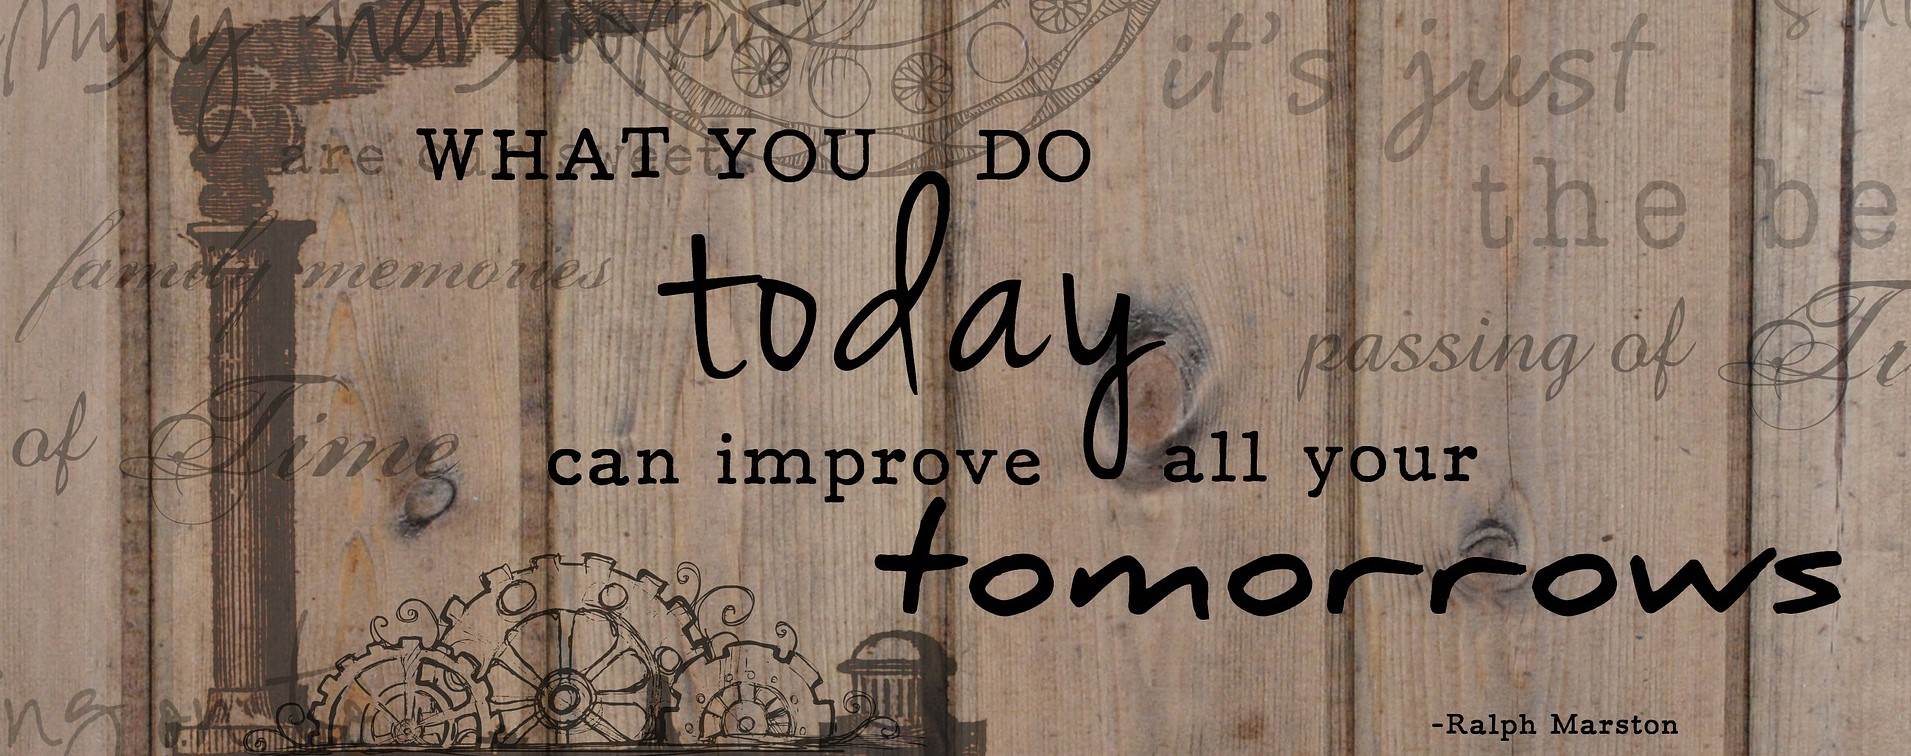 Motivational Quote What you do today can improve all your tomorrows by Raplh Marston on a wooden textured wall pic